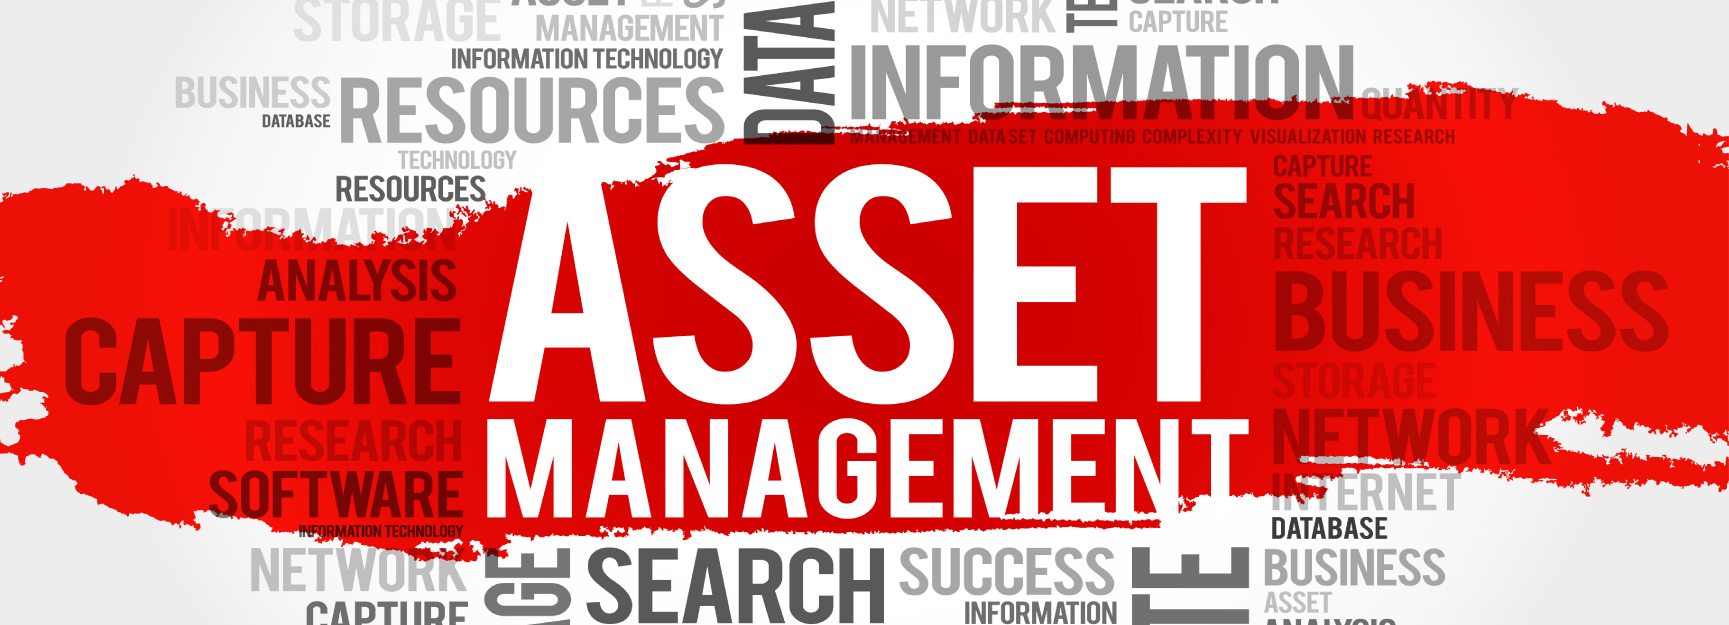 Control and administration of assets